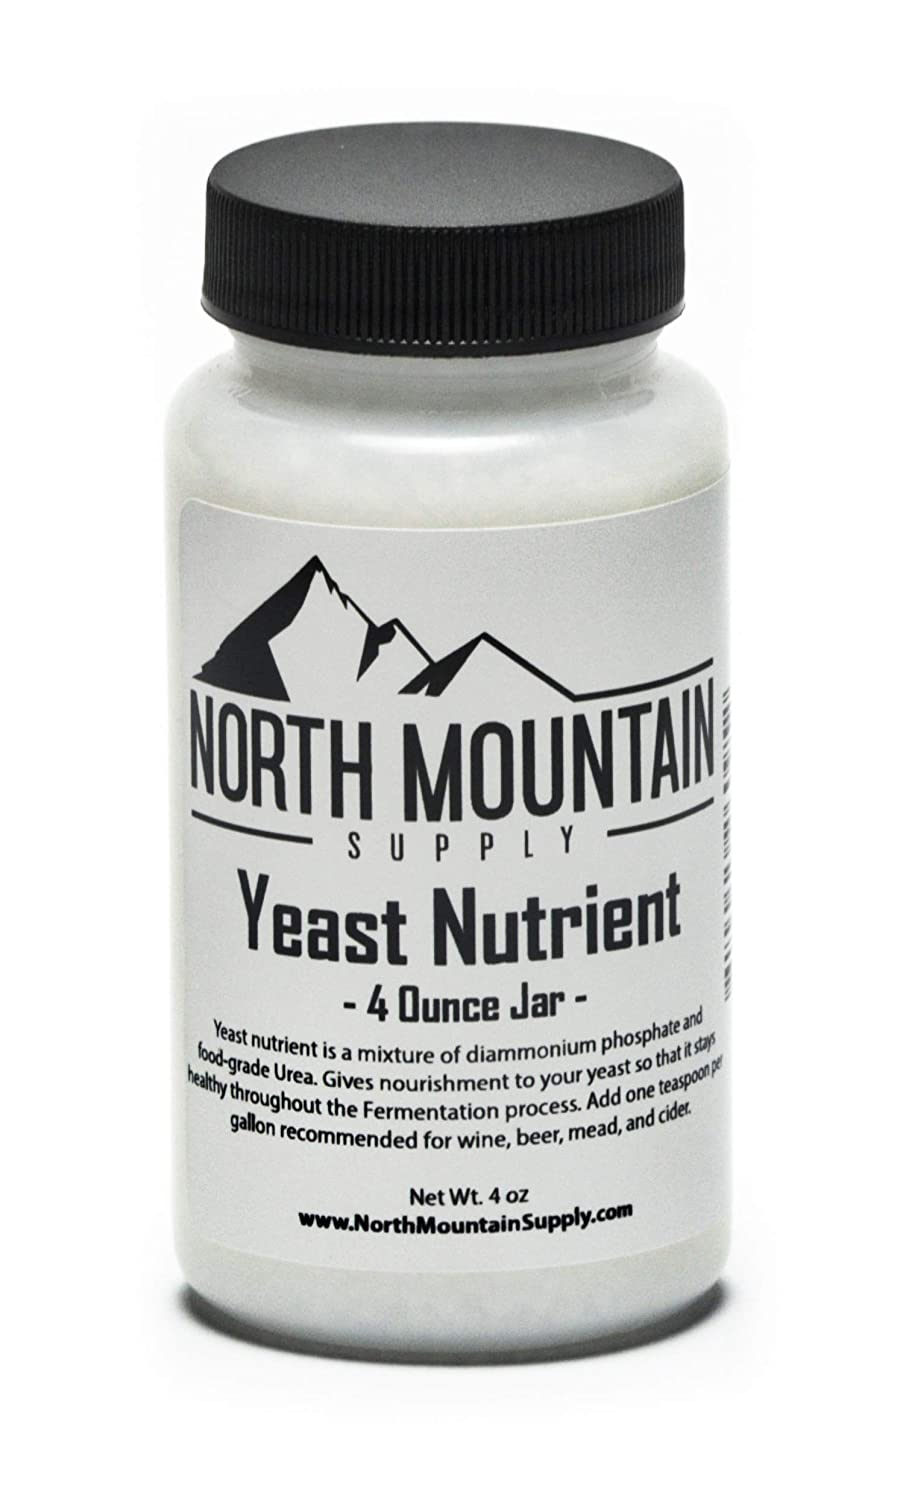 North Mountain Supply Food Grade Yeast Nutrient - 4 Ounce Jar